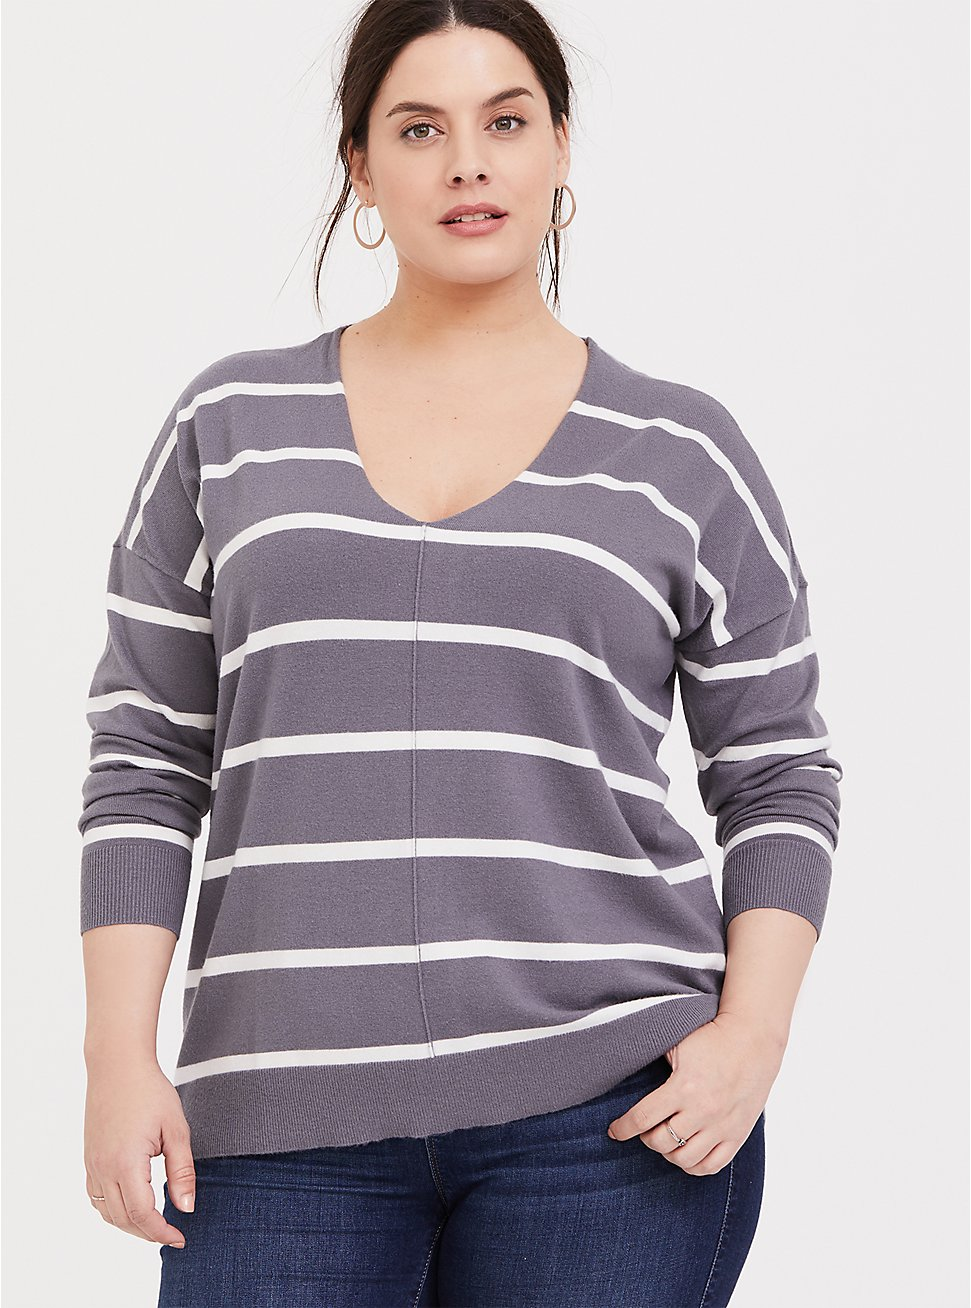 Slate Grey Stripe Pullover Sweater, STRIPES, hi-res